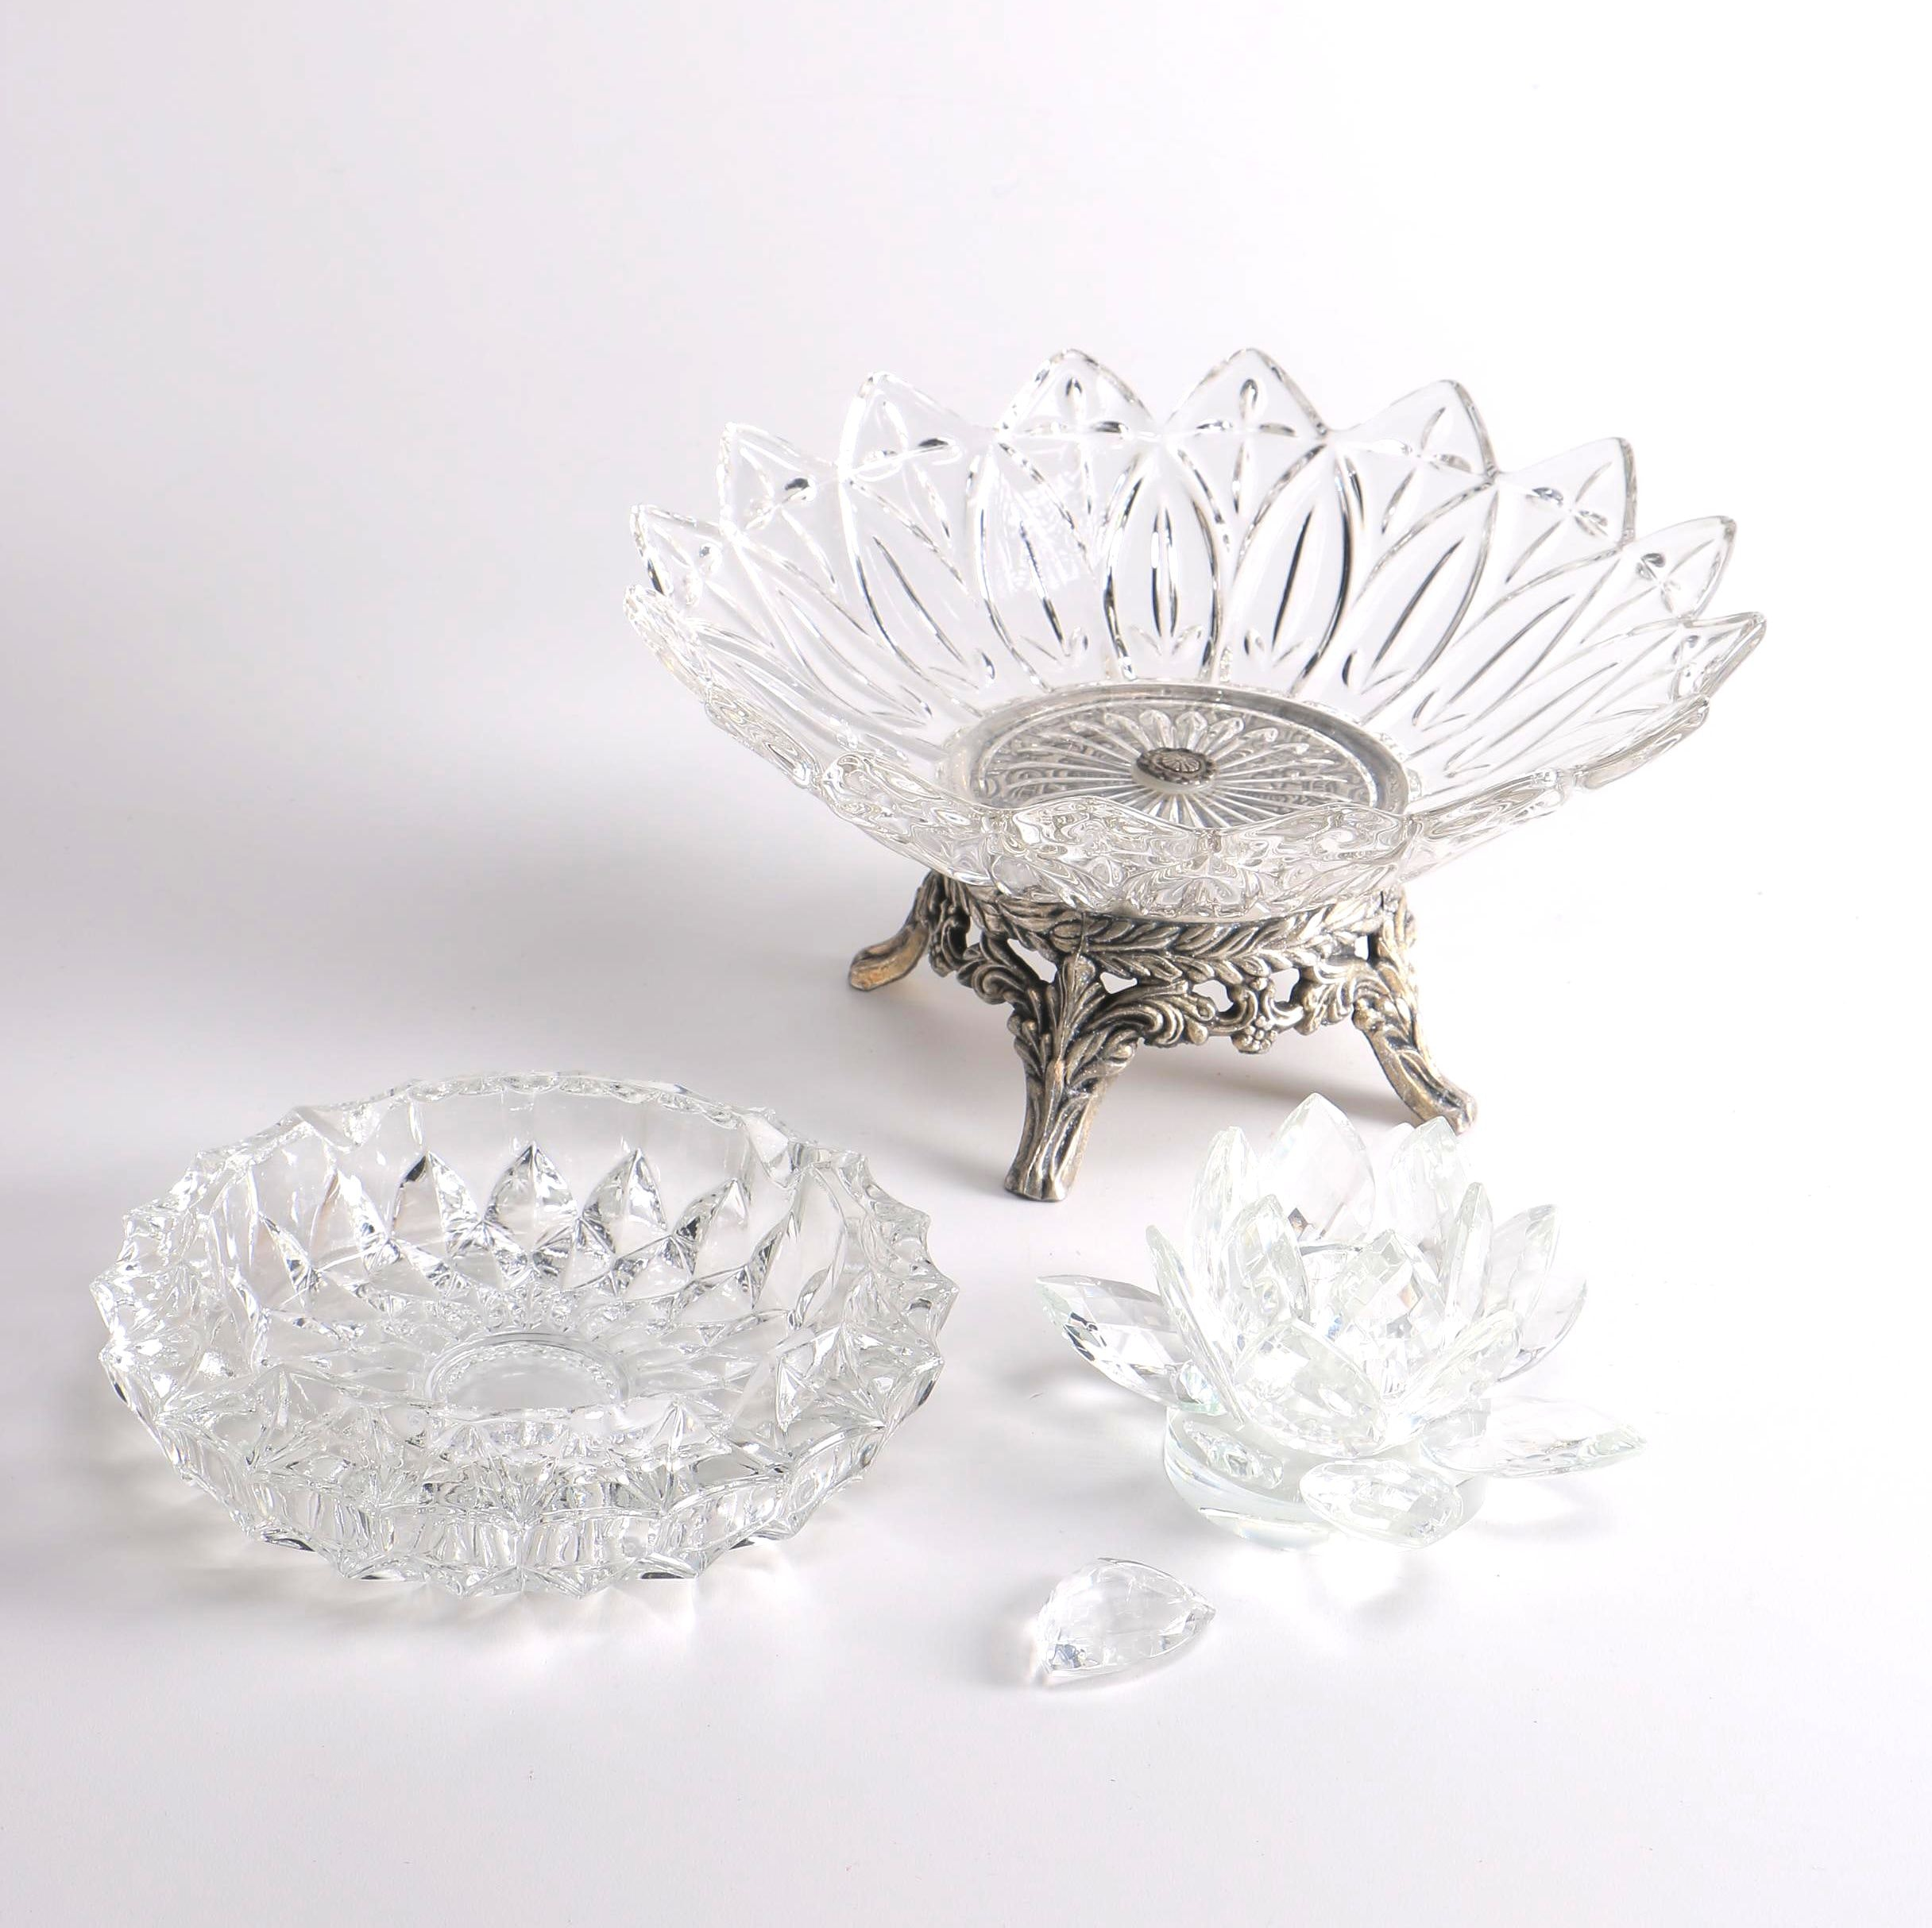 Pressed Glass Tableware